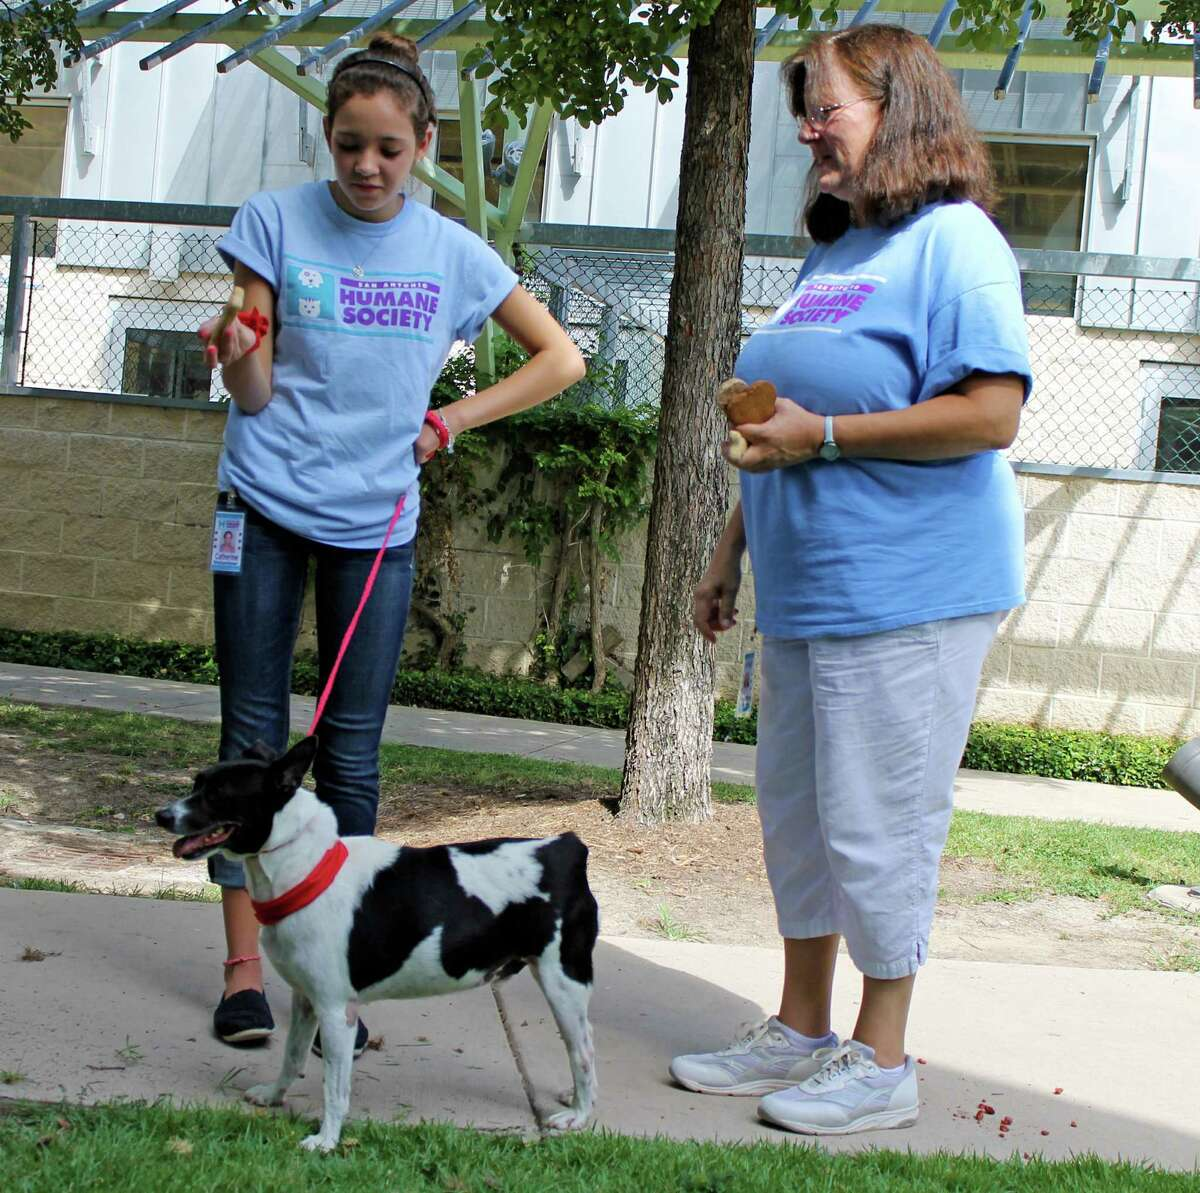 Catherine and Martha Janosko, daughter and mom, volunteer together at the San Antonio Humane Society.